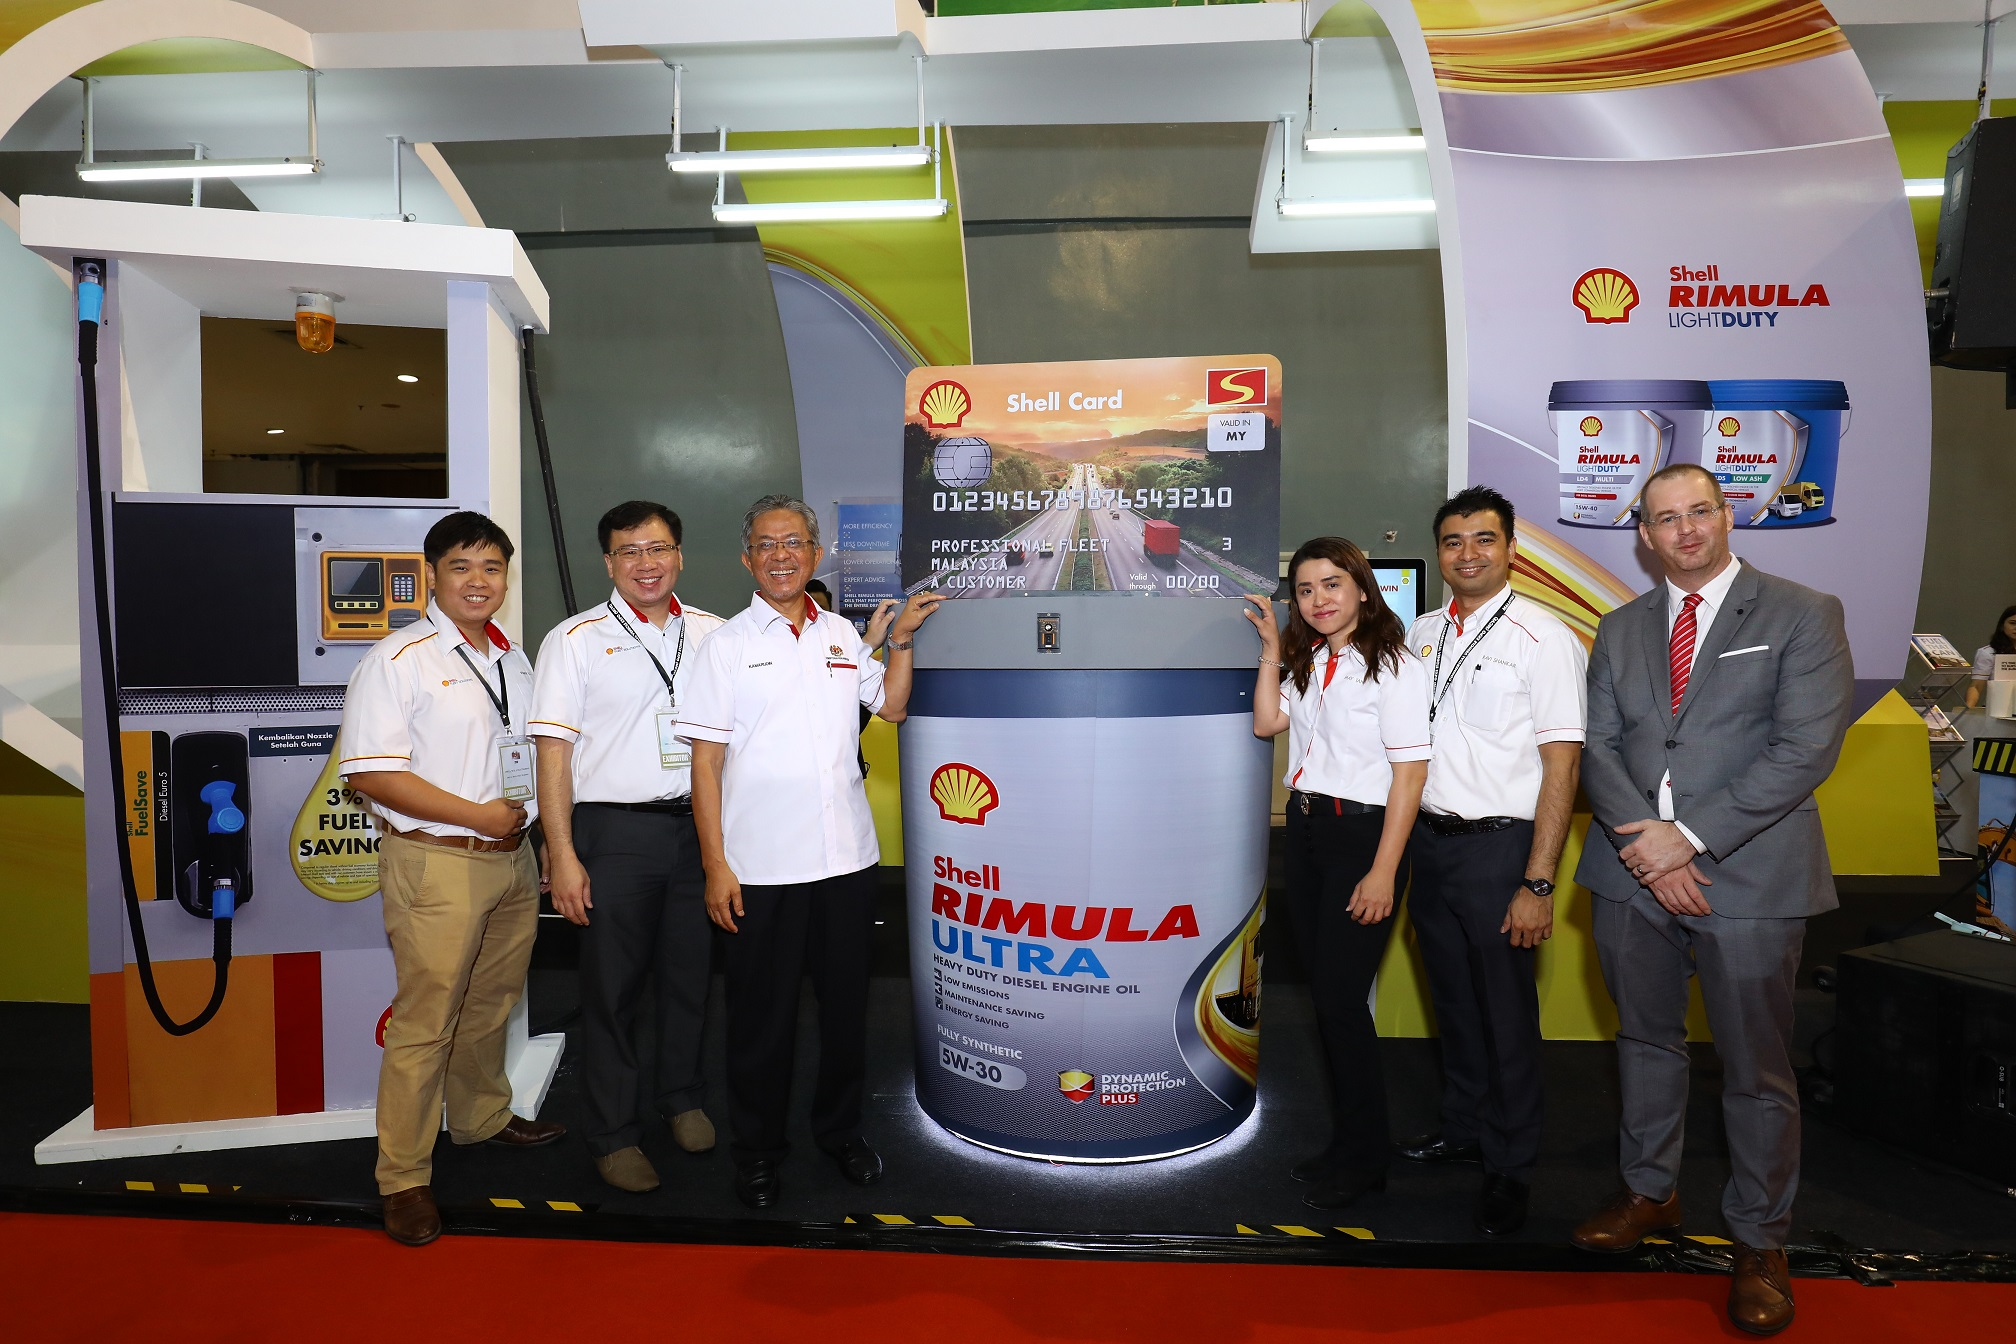 YB Datuk Kamarudin Jaafar (3rd left) with the Shell Malaysia team and the new Shell Rimula Ultra mock-up_2